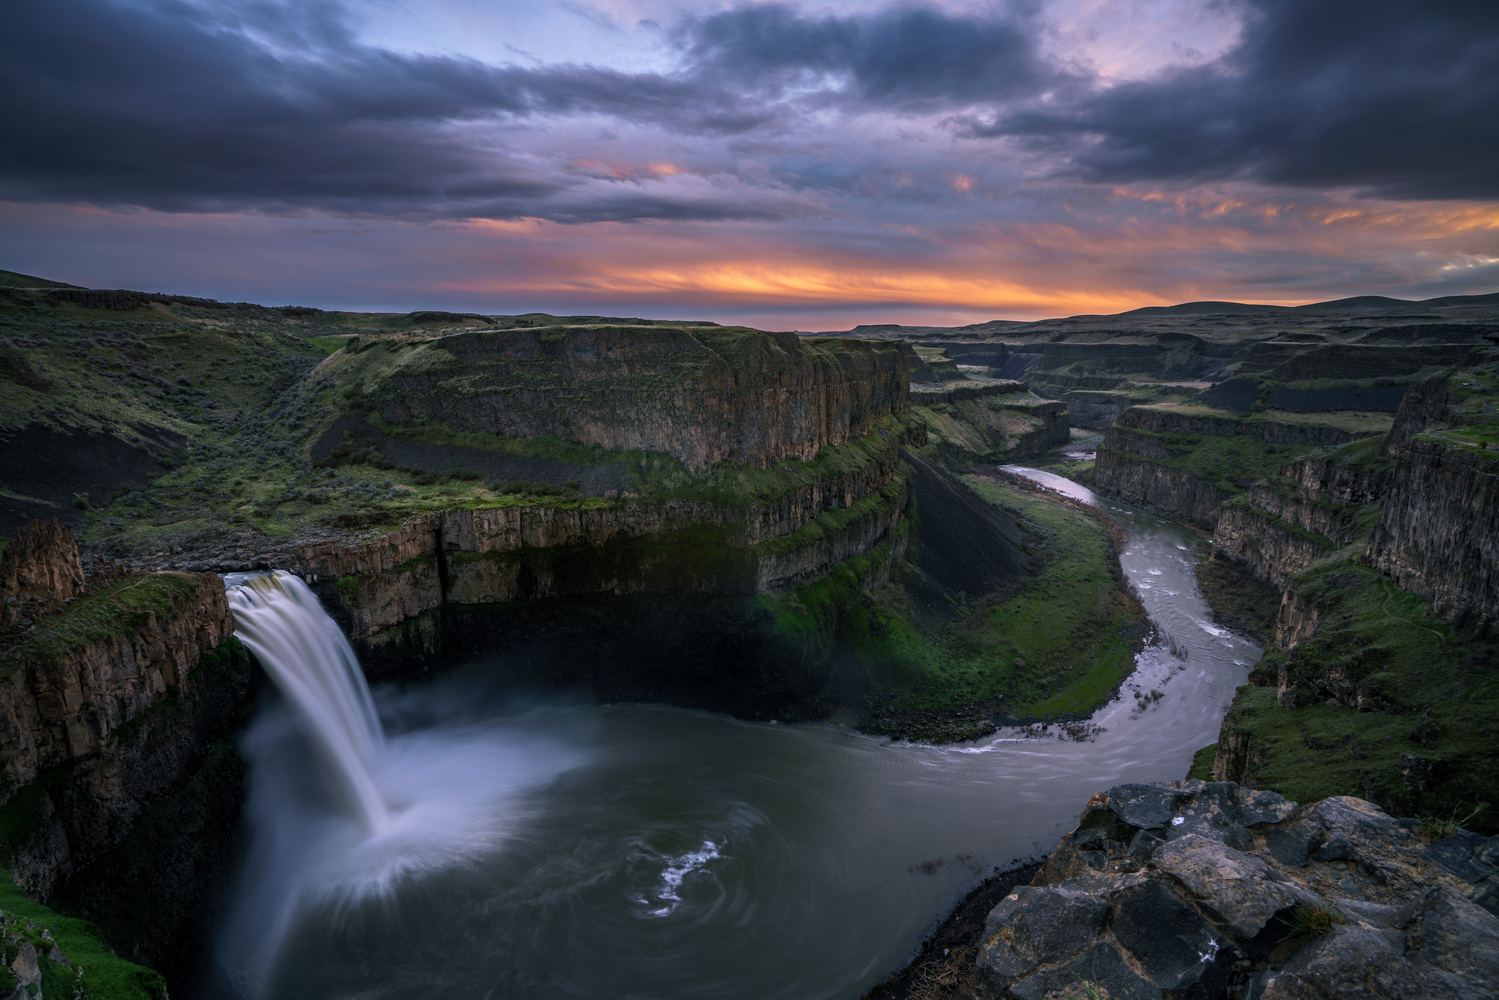 Sunset at Palouse Falls by Chris Stocking